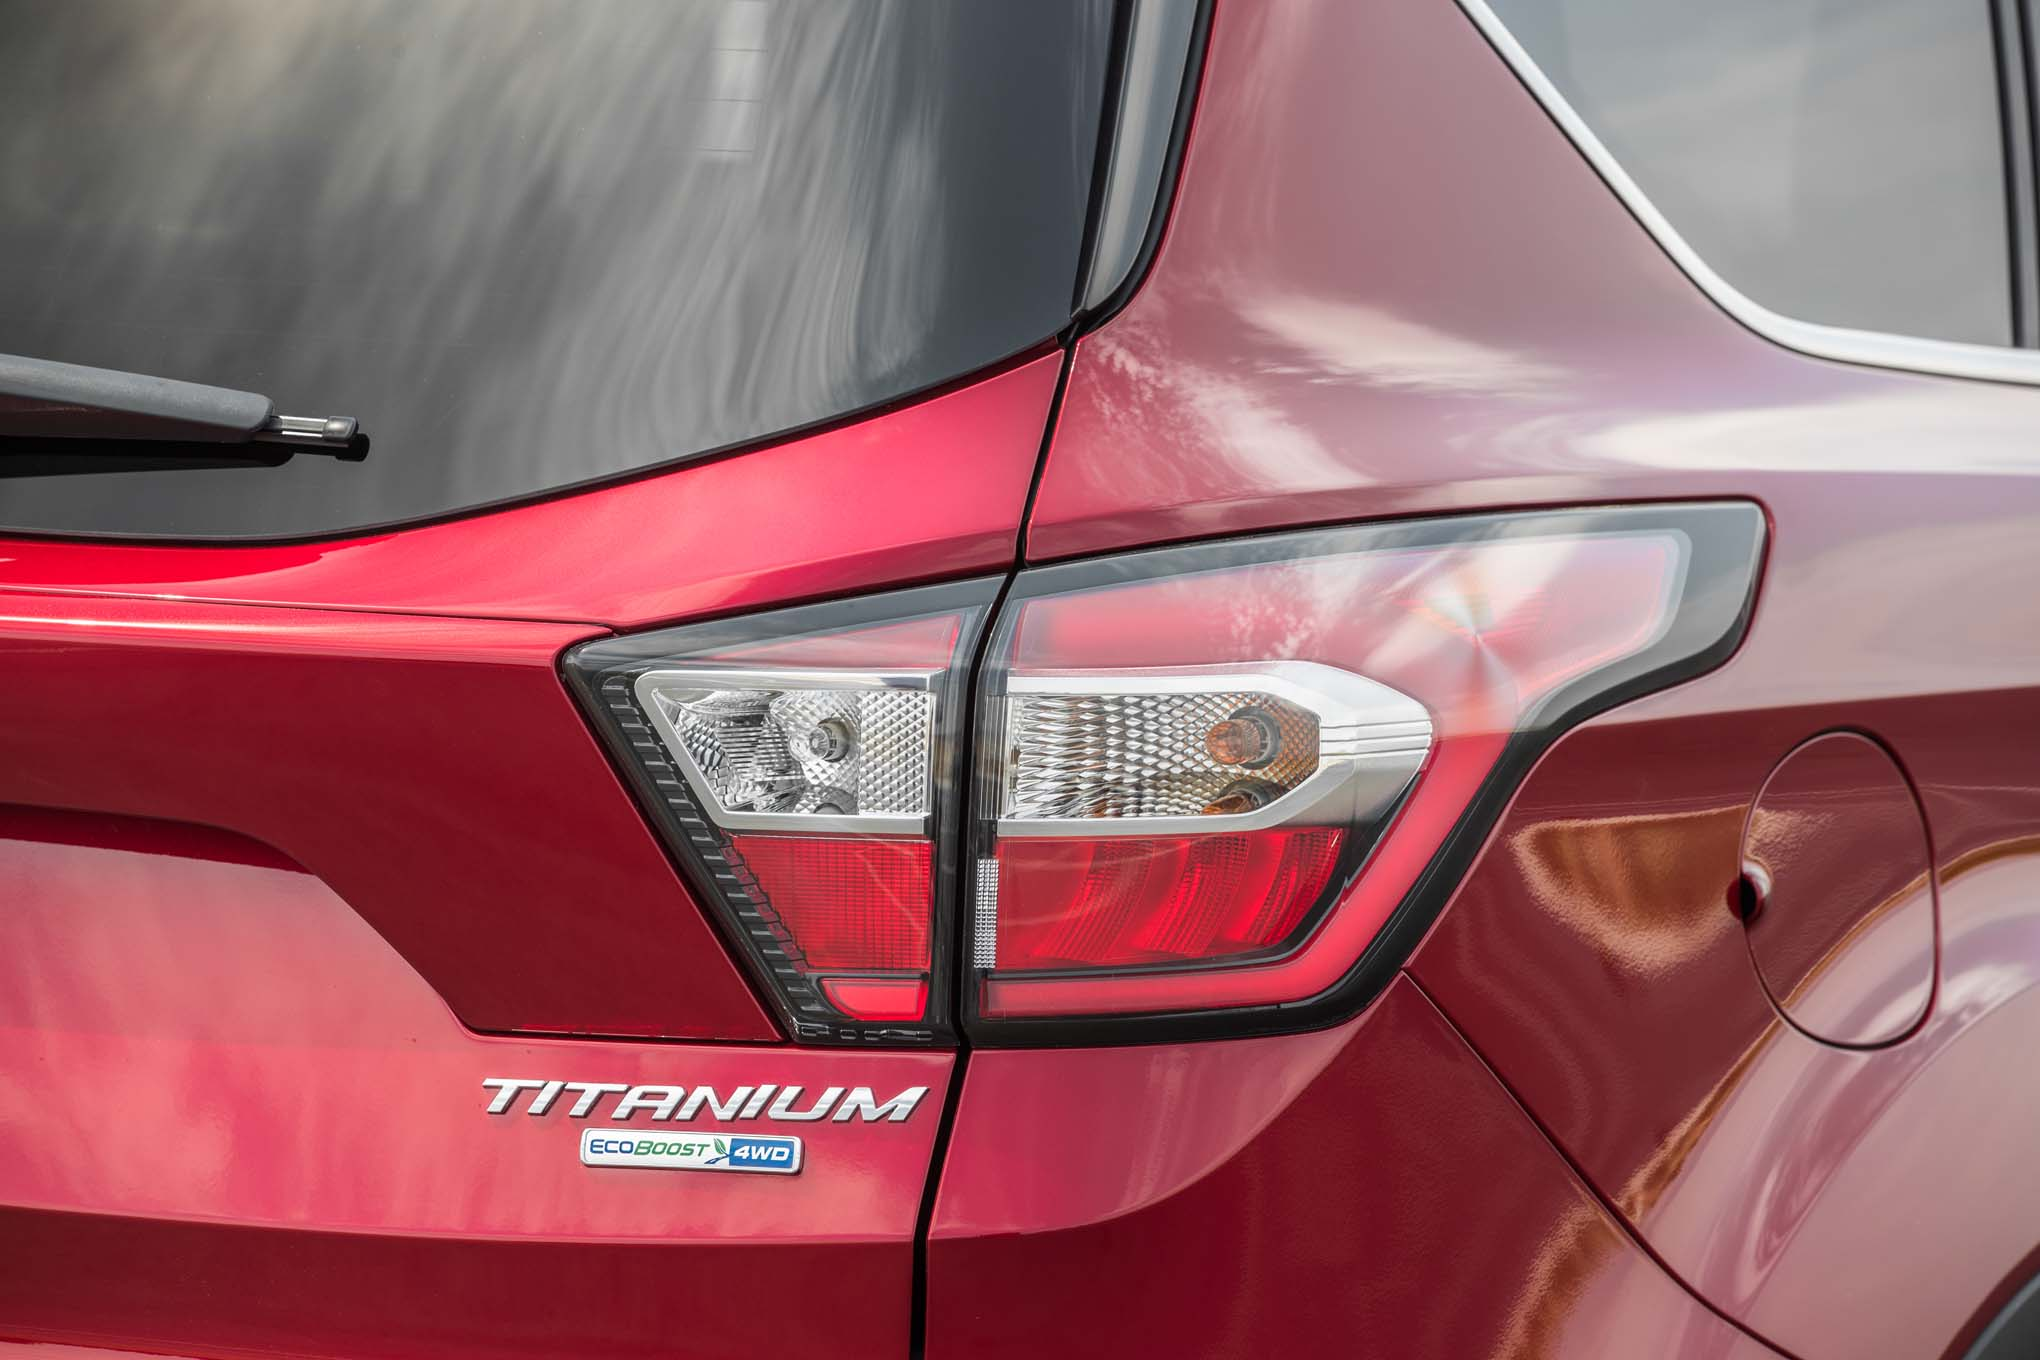 2017 Ford Escape Anium 20 Ecoboost Rear Taillight